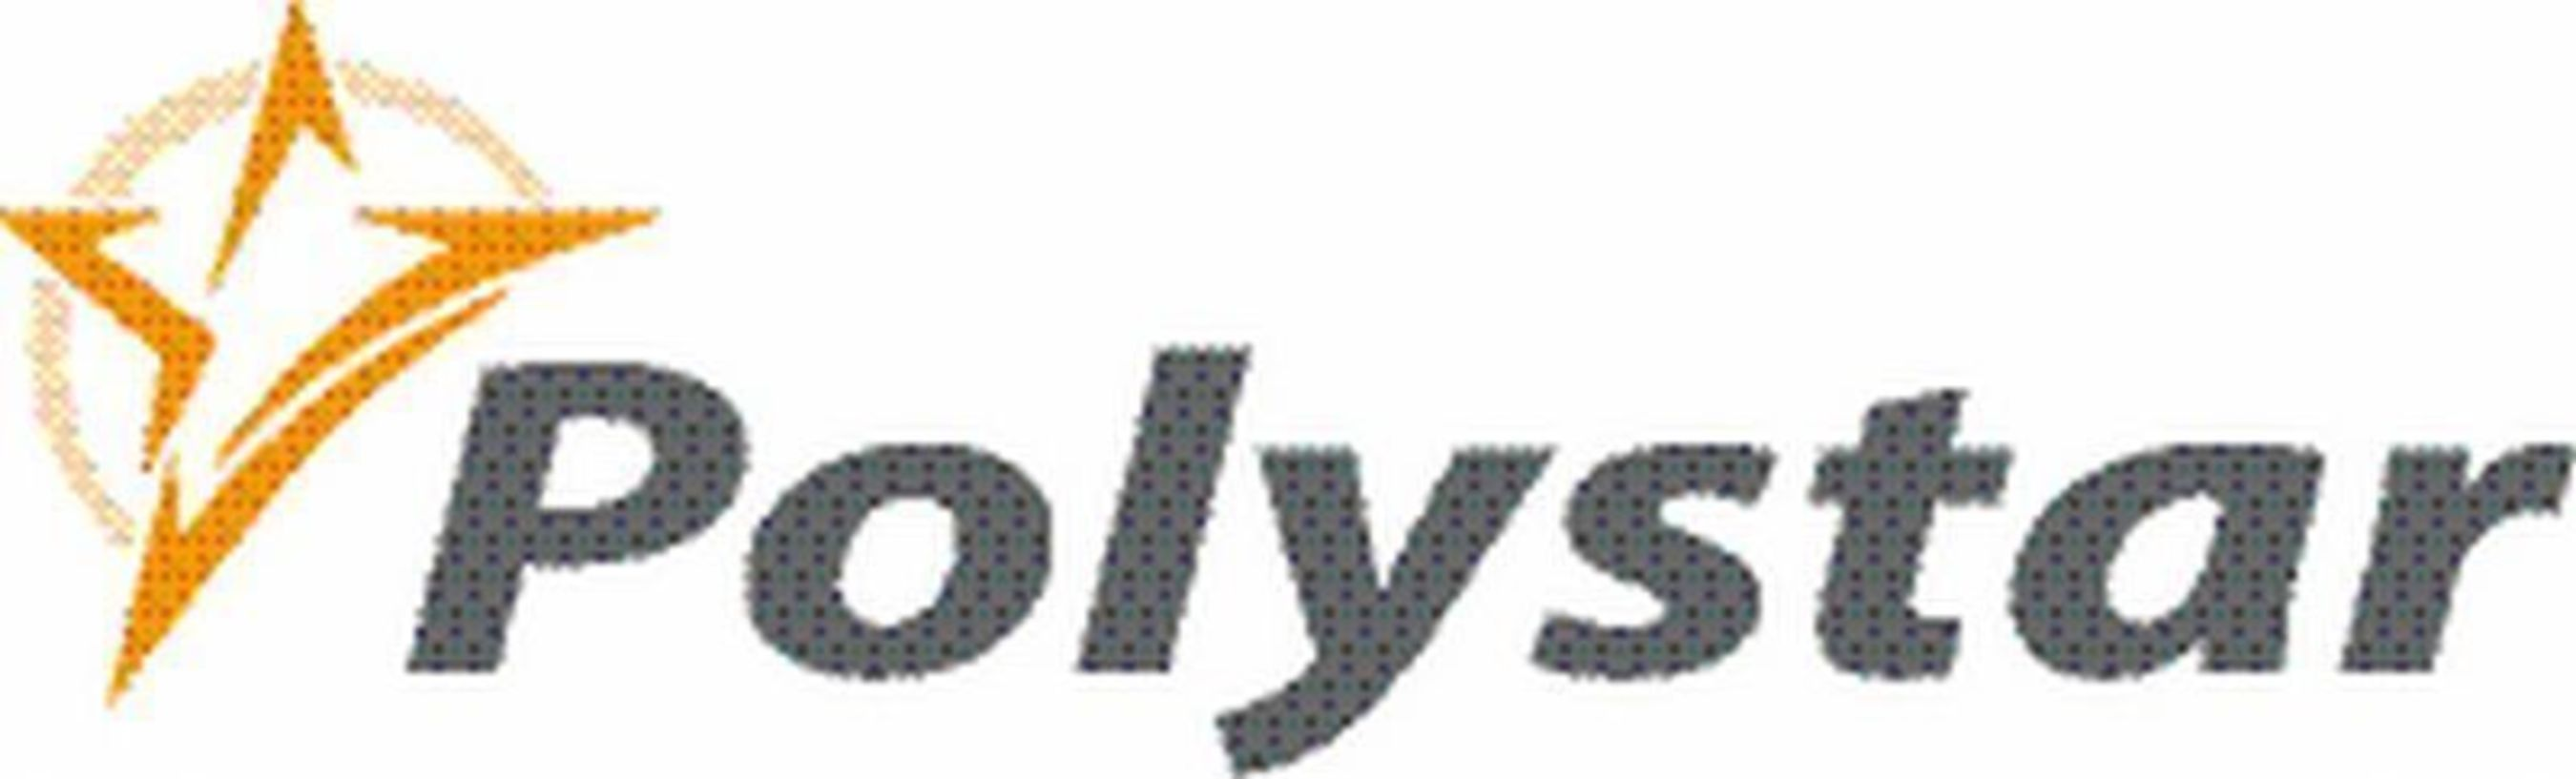 Three UK Deploys Polystar's Solutions to Provide Flexible Monitoring and Reporting for UK's First VoLTE Service Launch